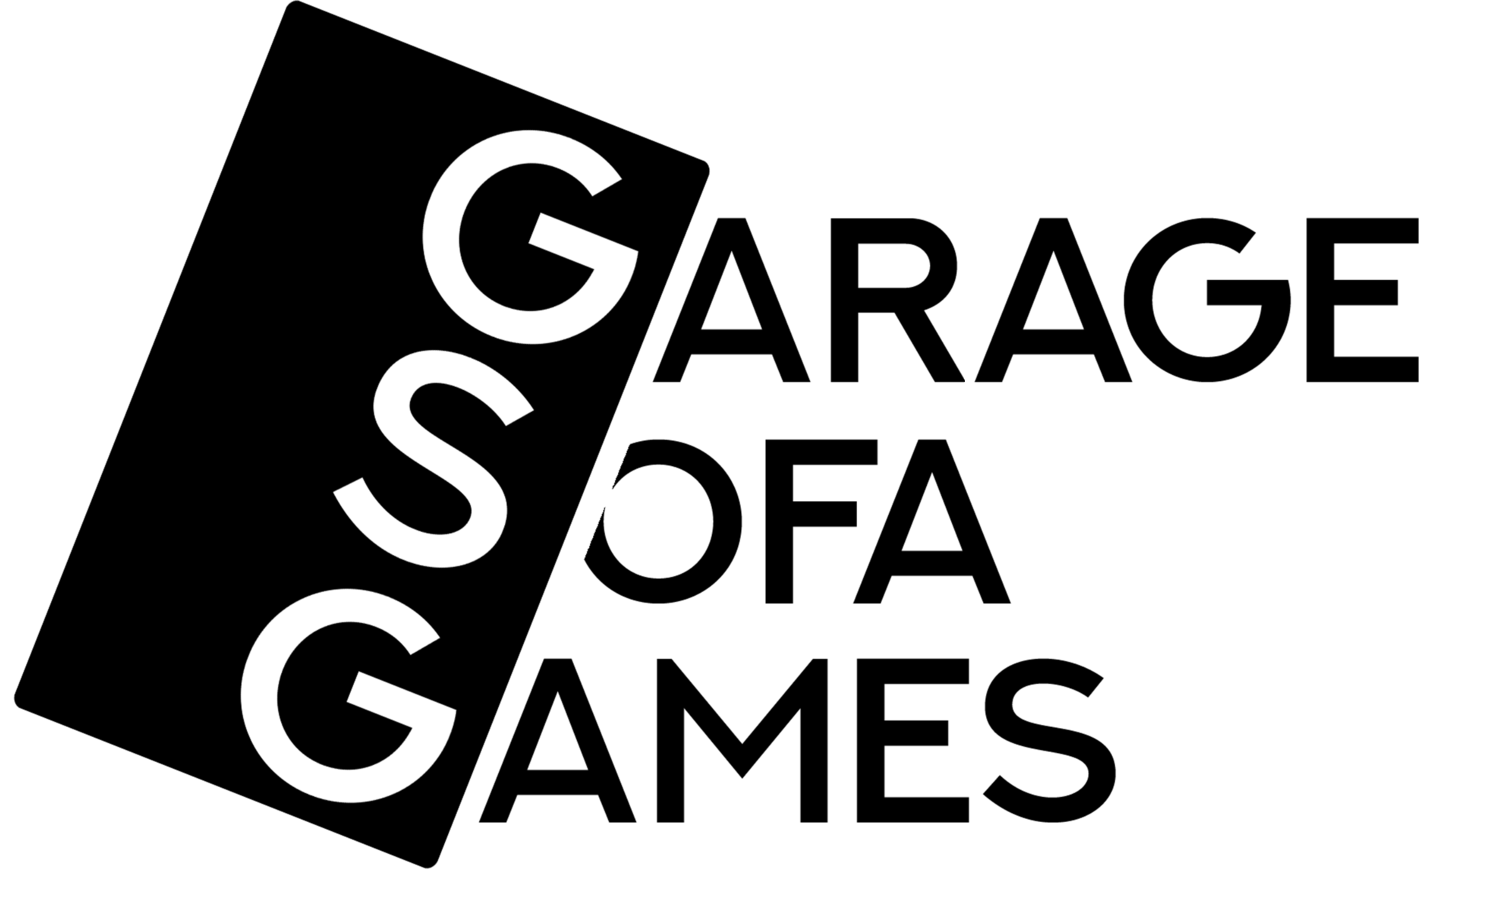 Garage Sofa Games